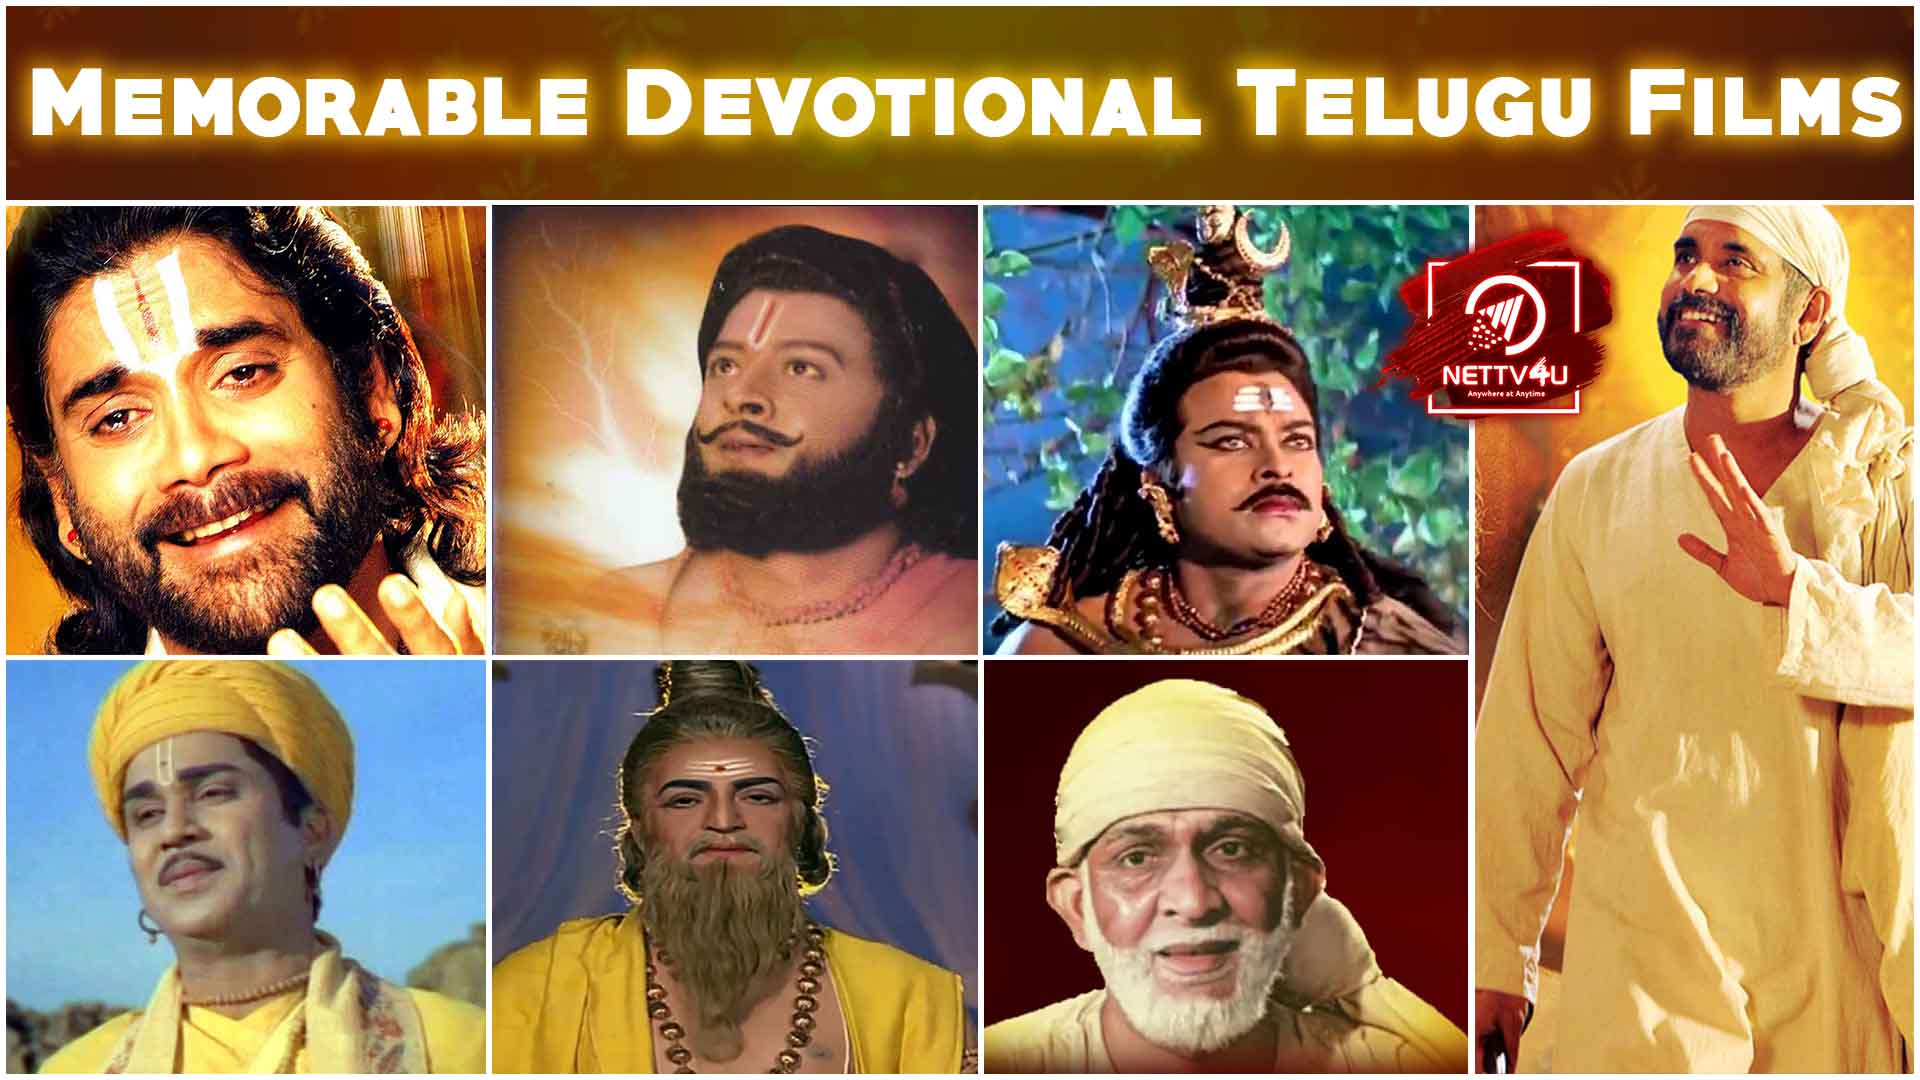 Memorable Devotional Telugu Films